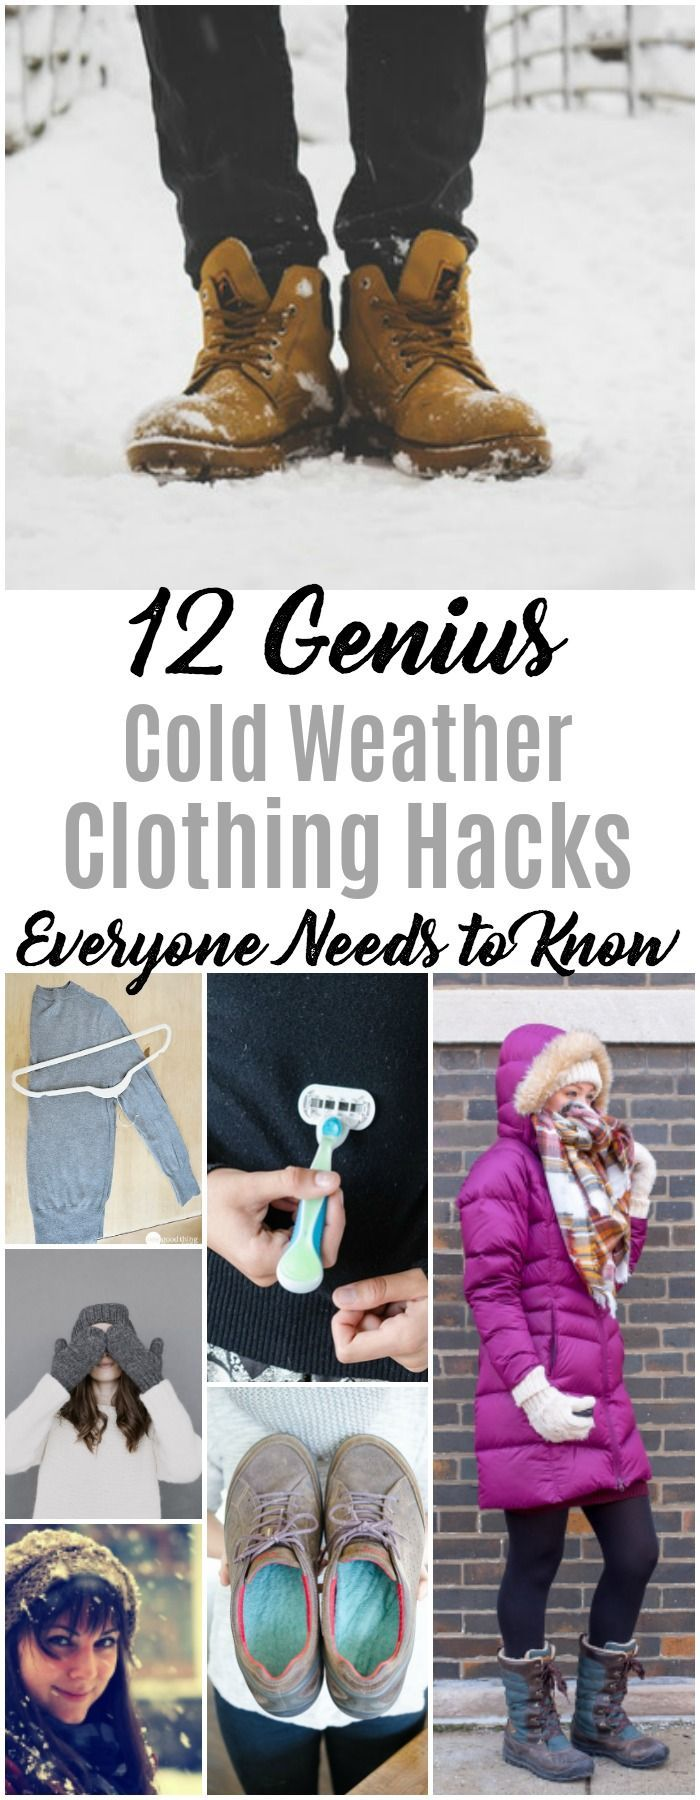 12 Life Changing Cold Weather Clothing Hacks Sure to Keep You Warmer All Season